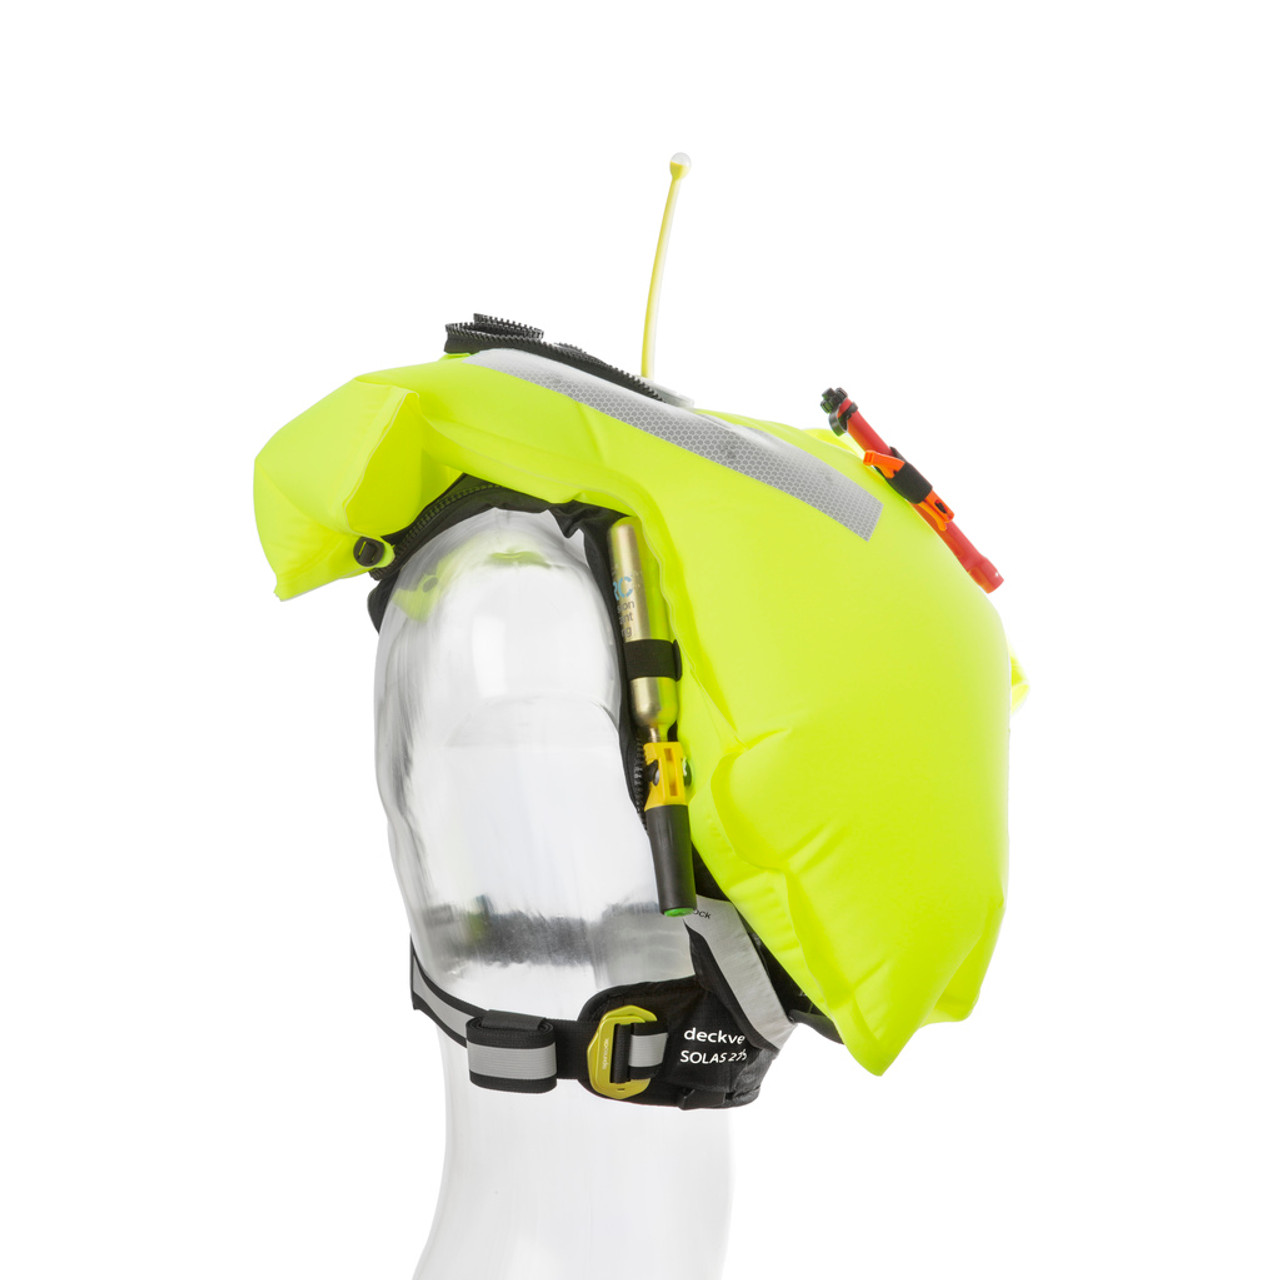 Spinlock SOLAS 275N Deckvest Lifejacket - Inflated